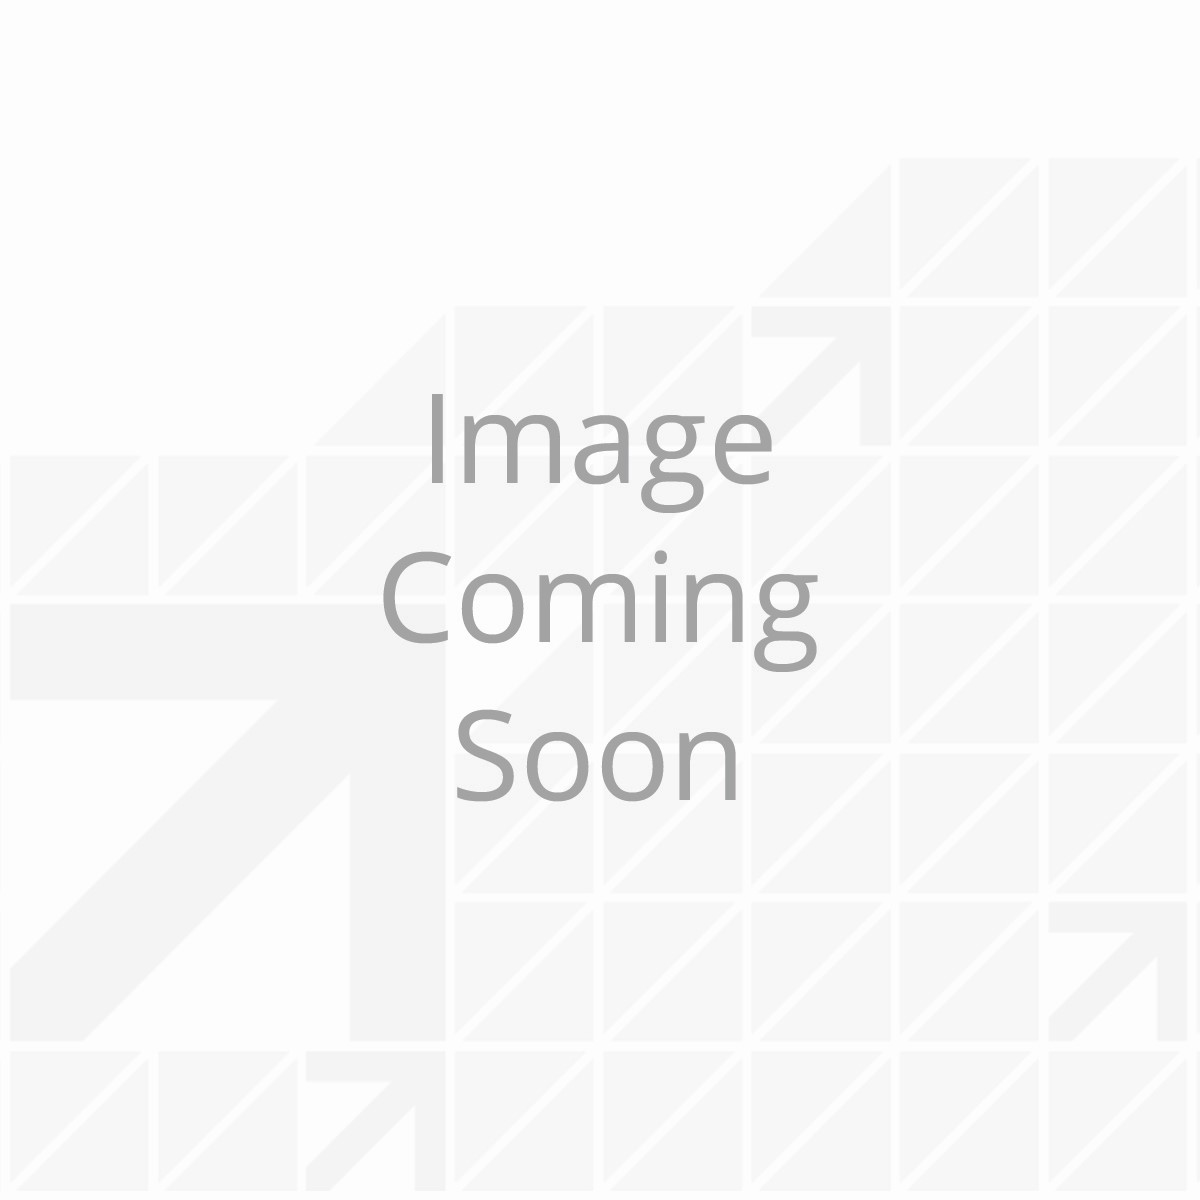 "Short Trunnion Bar Weight Distribution Hitch Kit (8K - 10K lbs., 28-3/8"" Bars)"